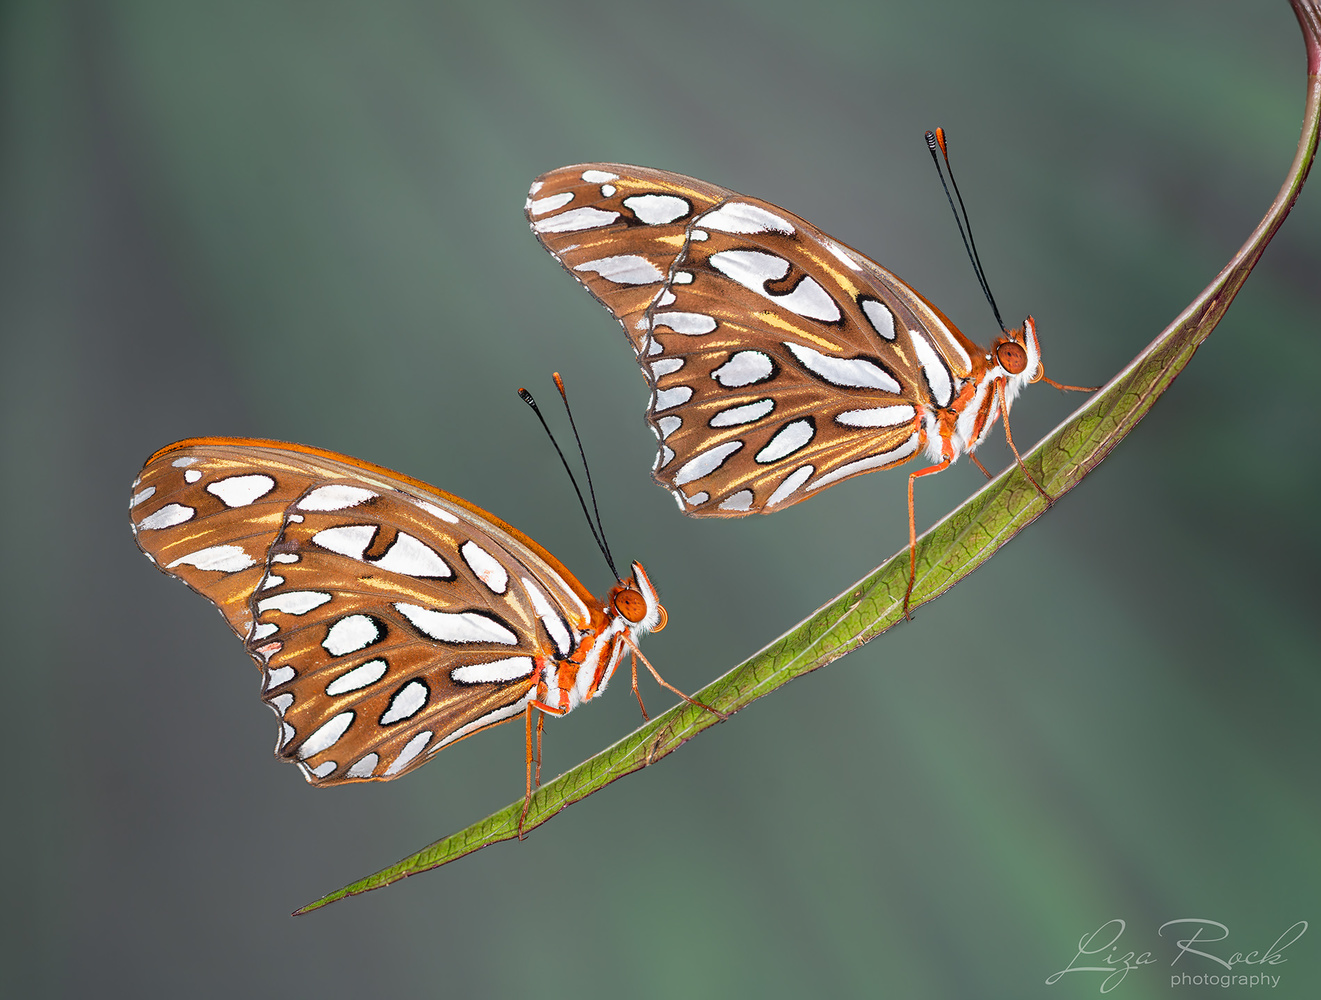 Butterfly Duo on Leaf - Photograph by Liza Rock